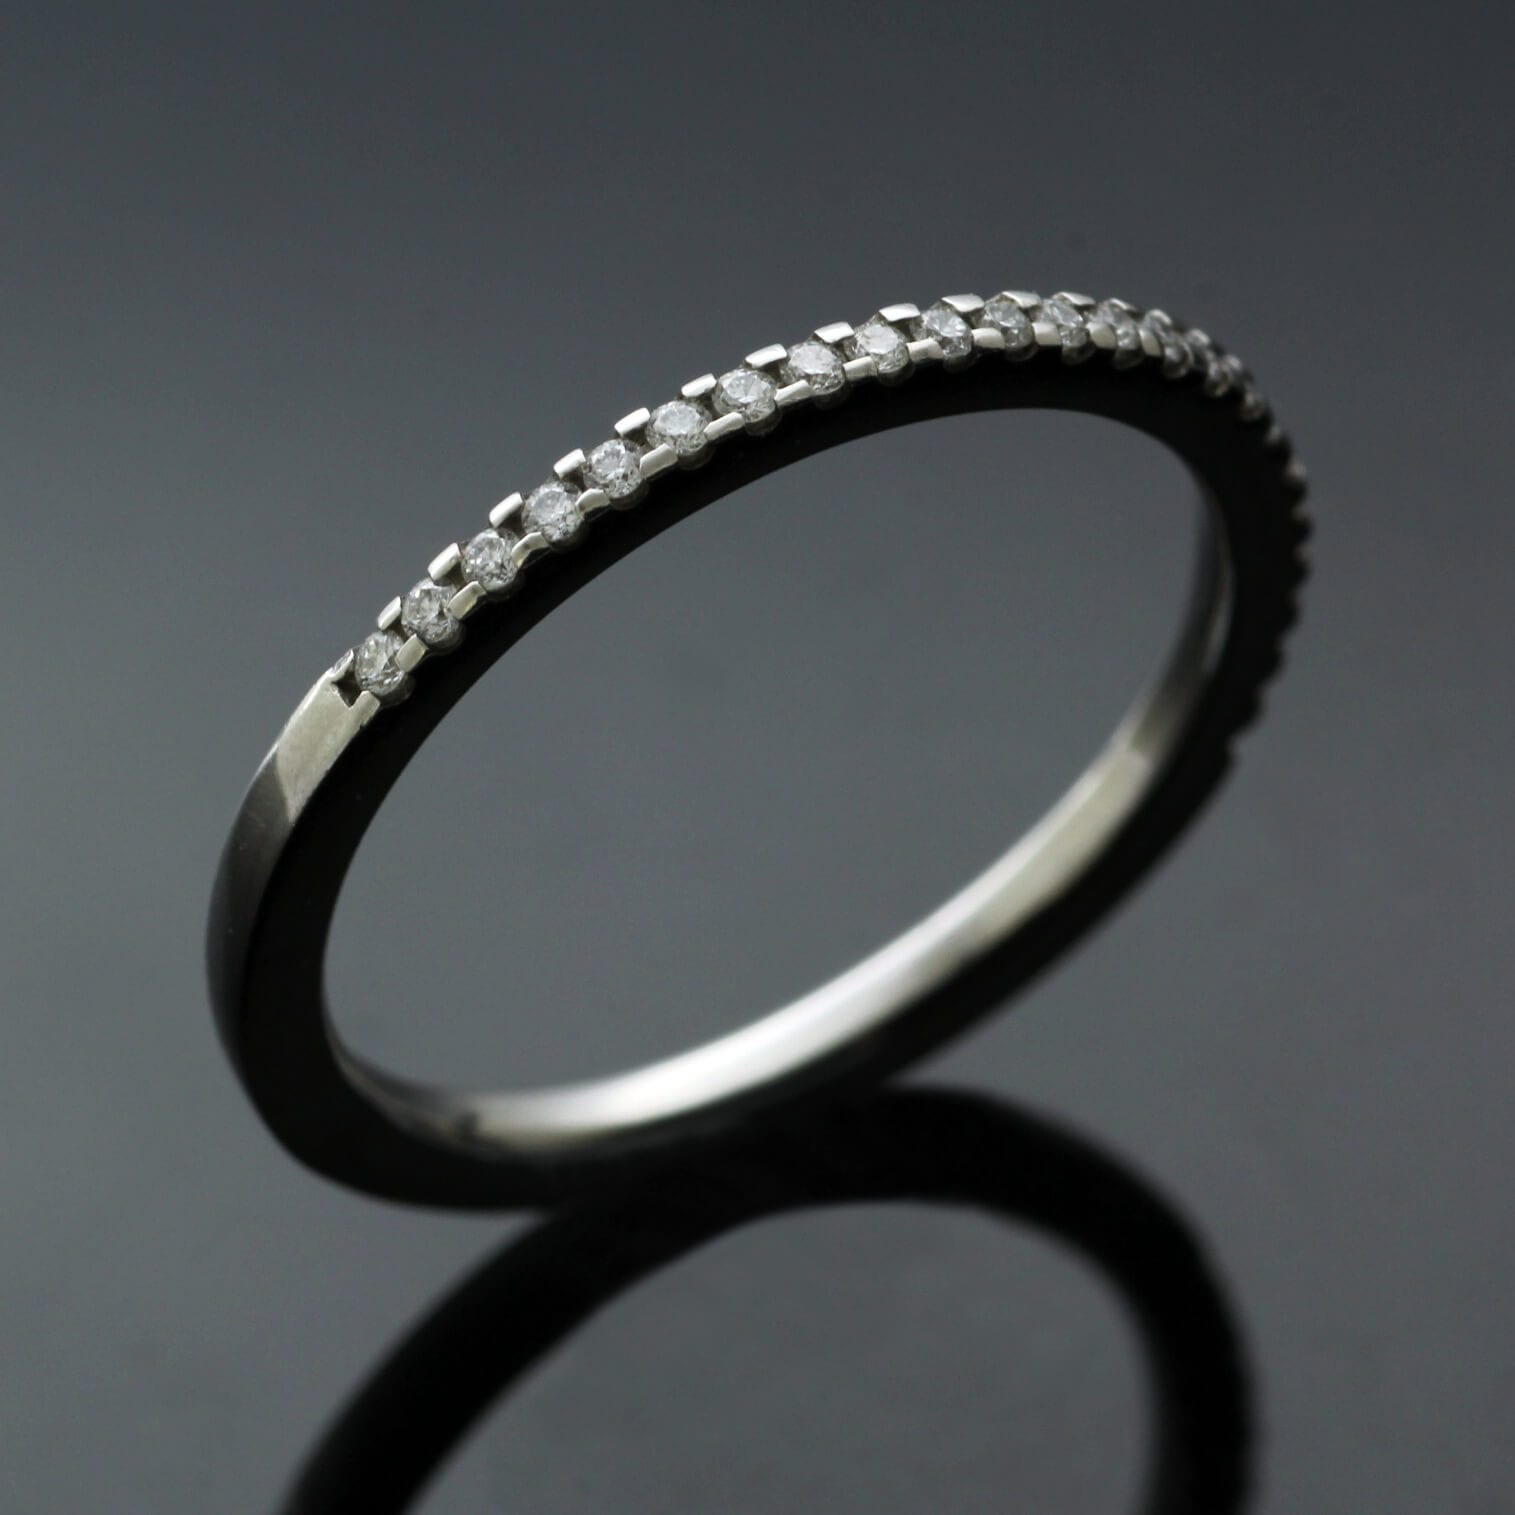 Half ET handmade eternity band Diamond Platinum band